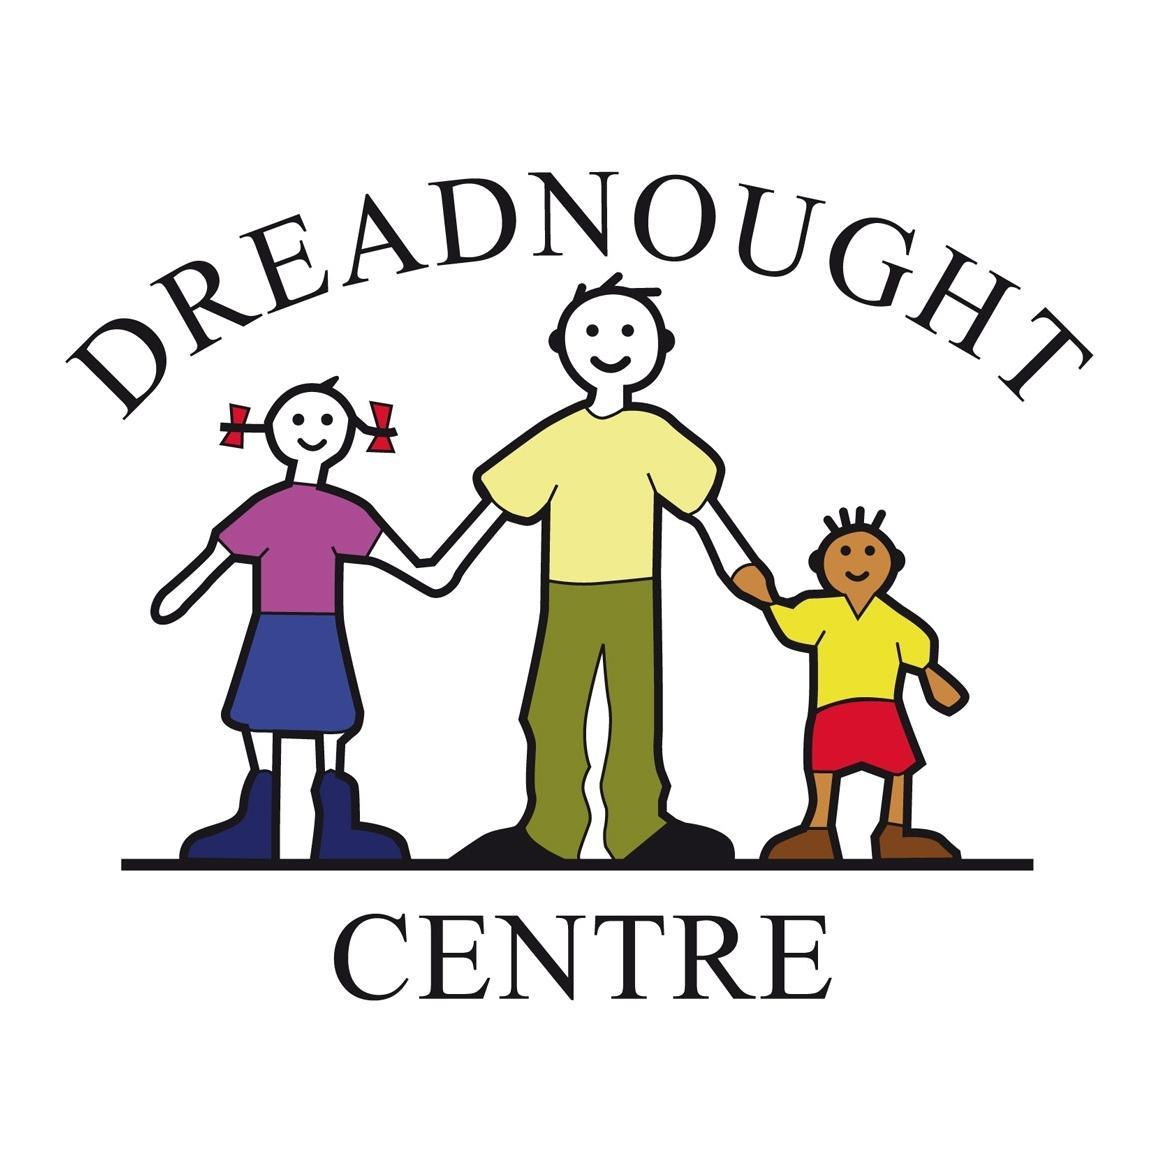 Image result for the dreadnought centre